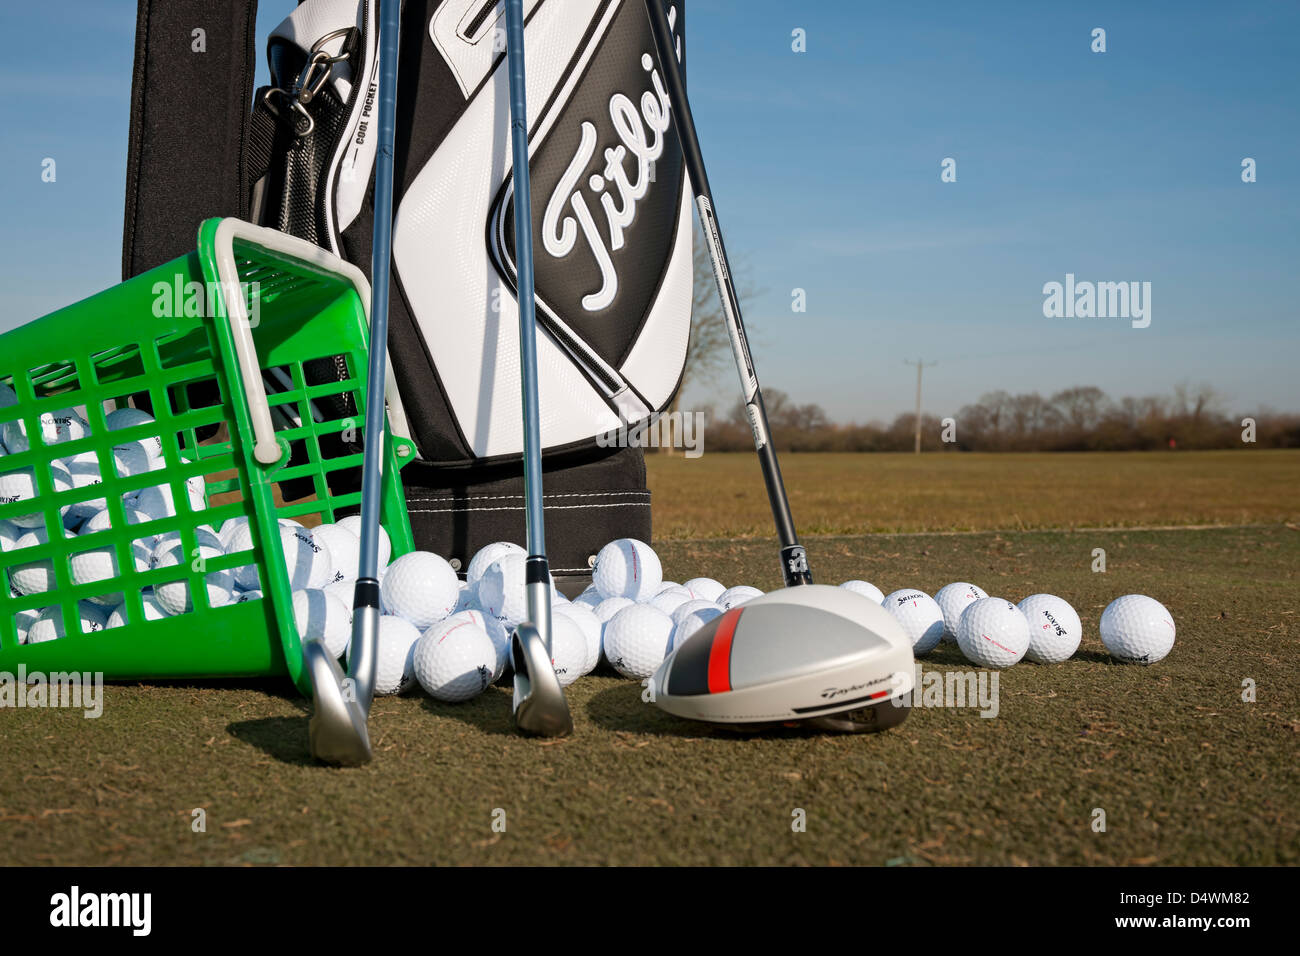 Golf bag and clubs with range balls on a golf practice ground England UK United Kingdom GB Great Britain Stock Photo